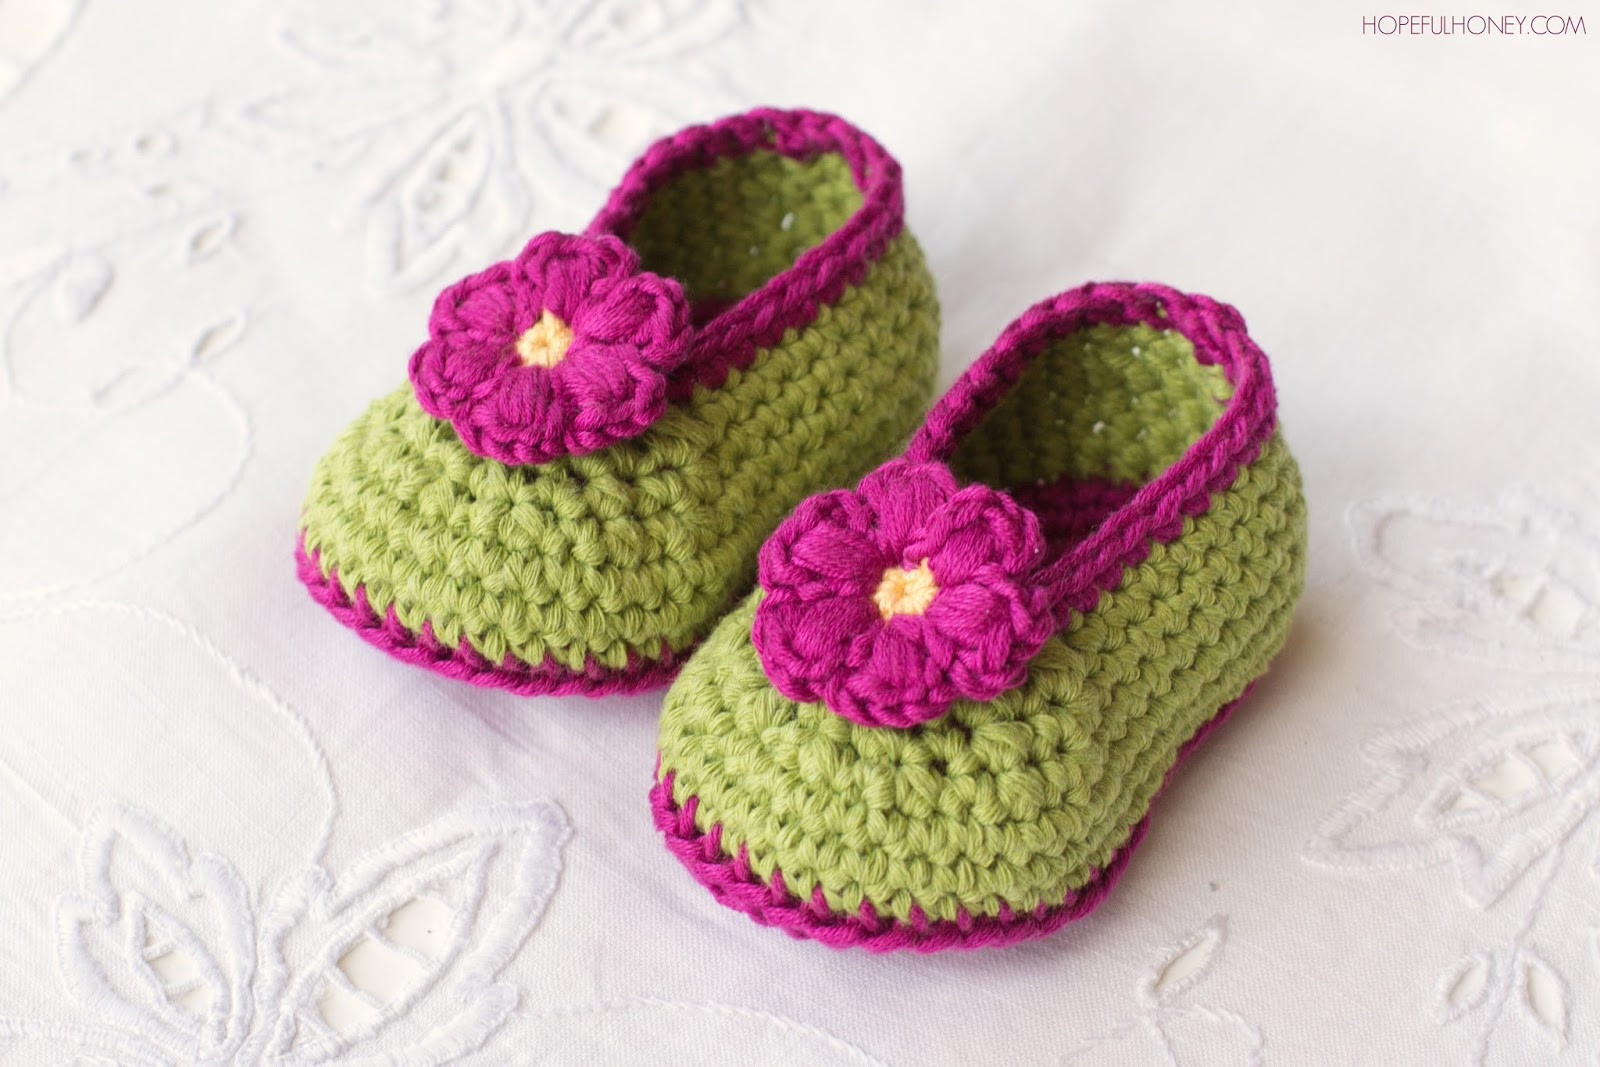 Free Crochet Patterns for Baby Shoes Elegant Ideas for Your Baby Booties Crochet Yishifashion Of Wonderful 50 Photos Free Crochet Patterns for Baby Shoes